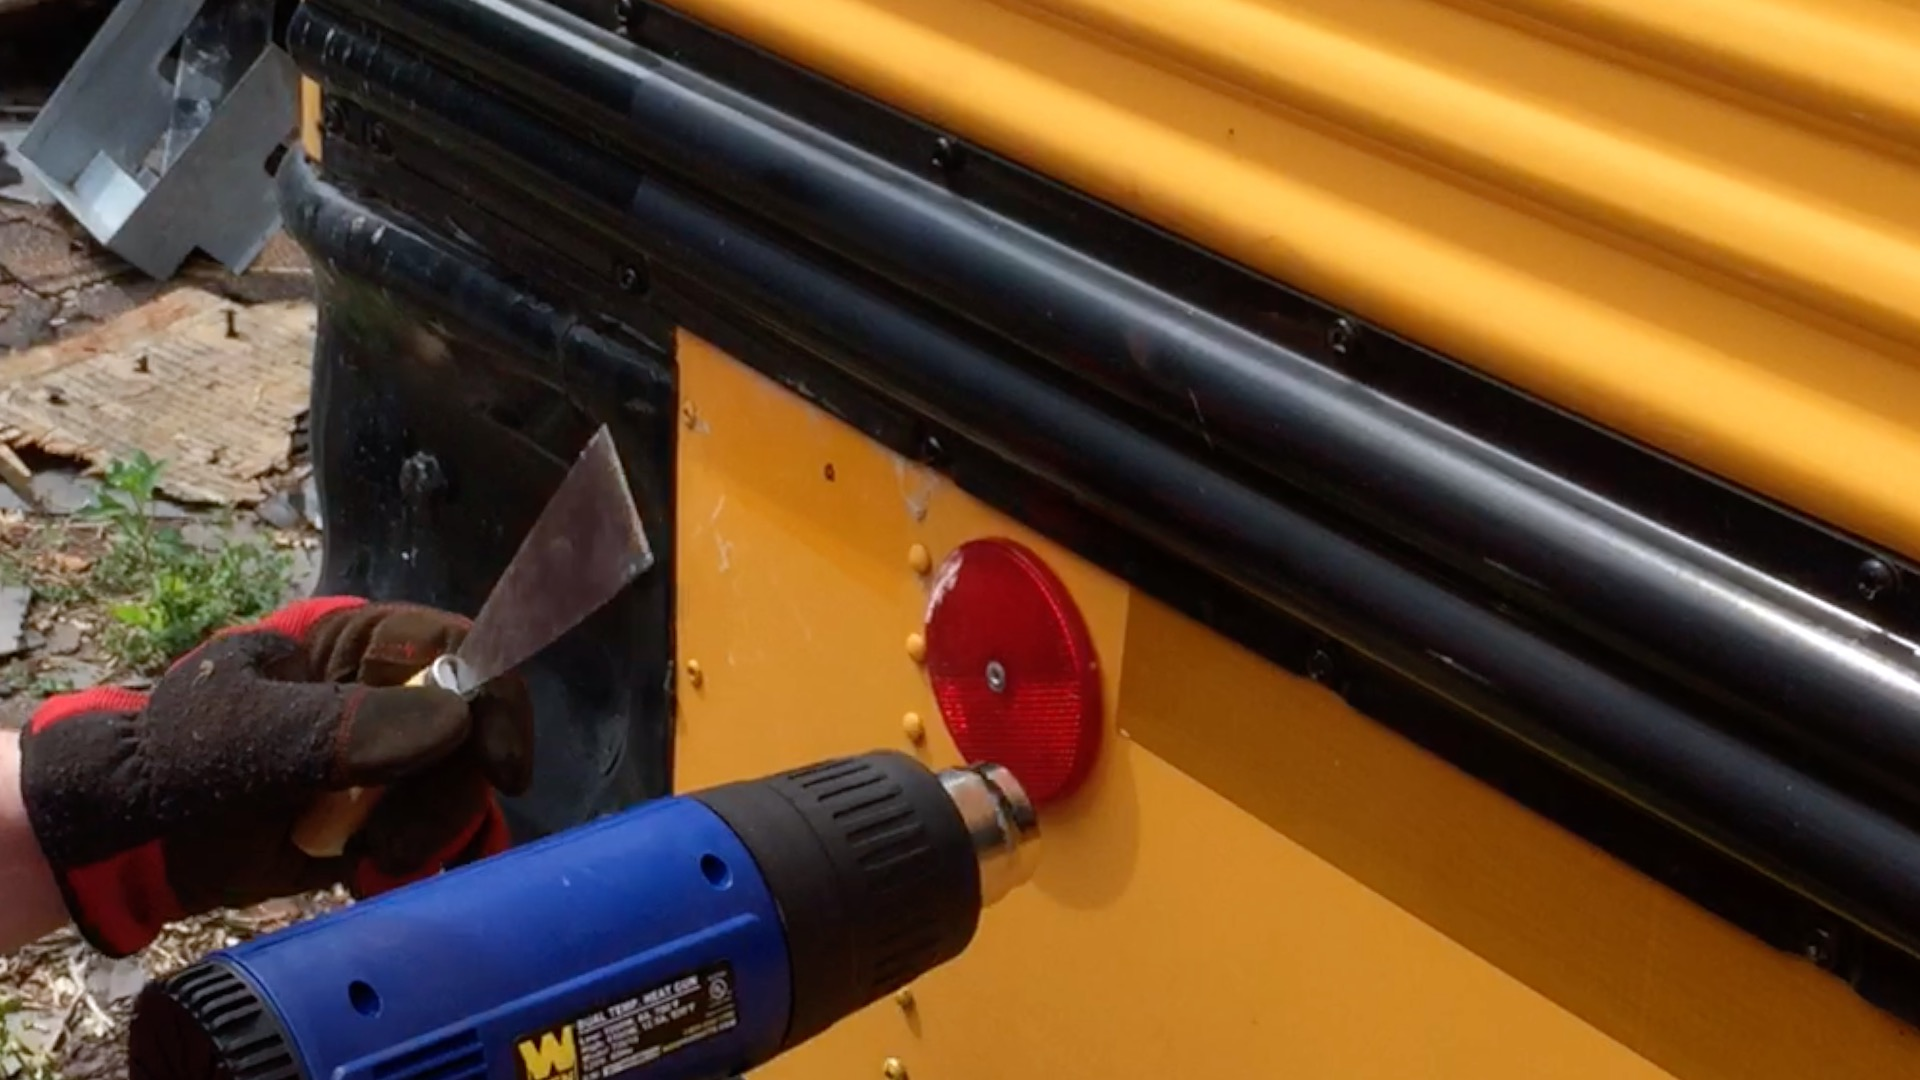 Removing Reflective Tape From a School Bus